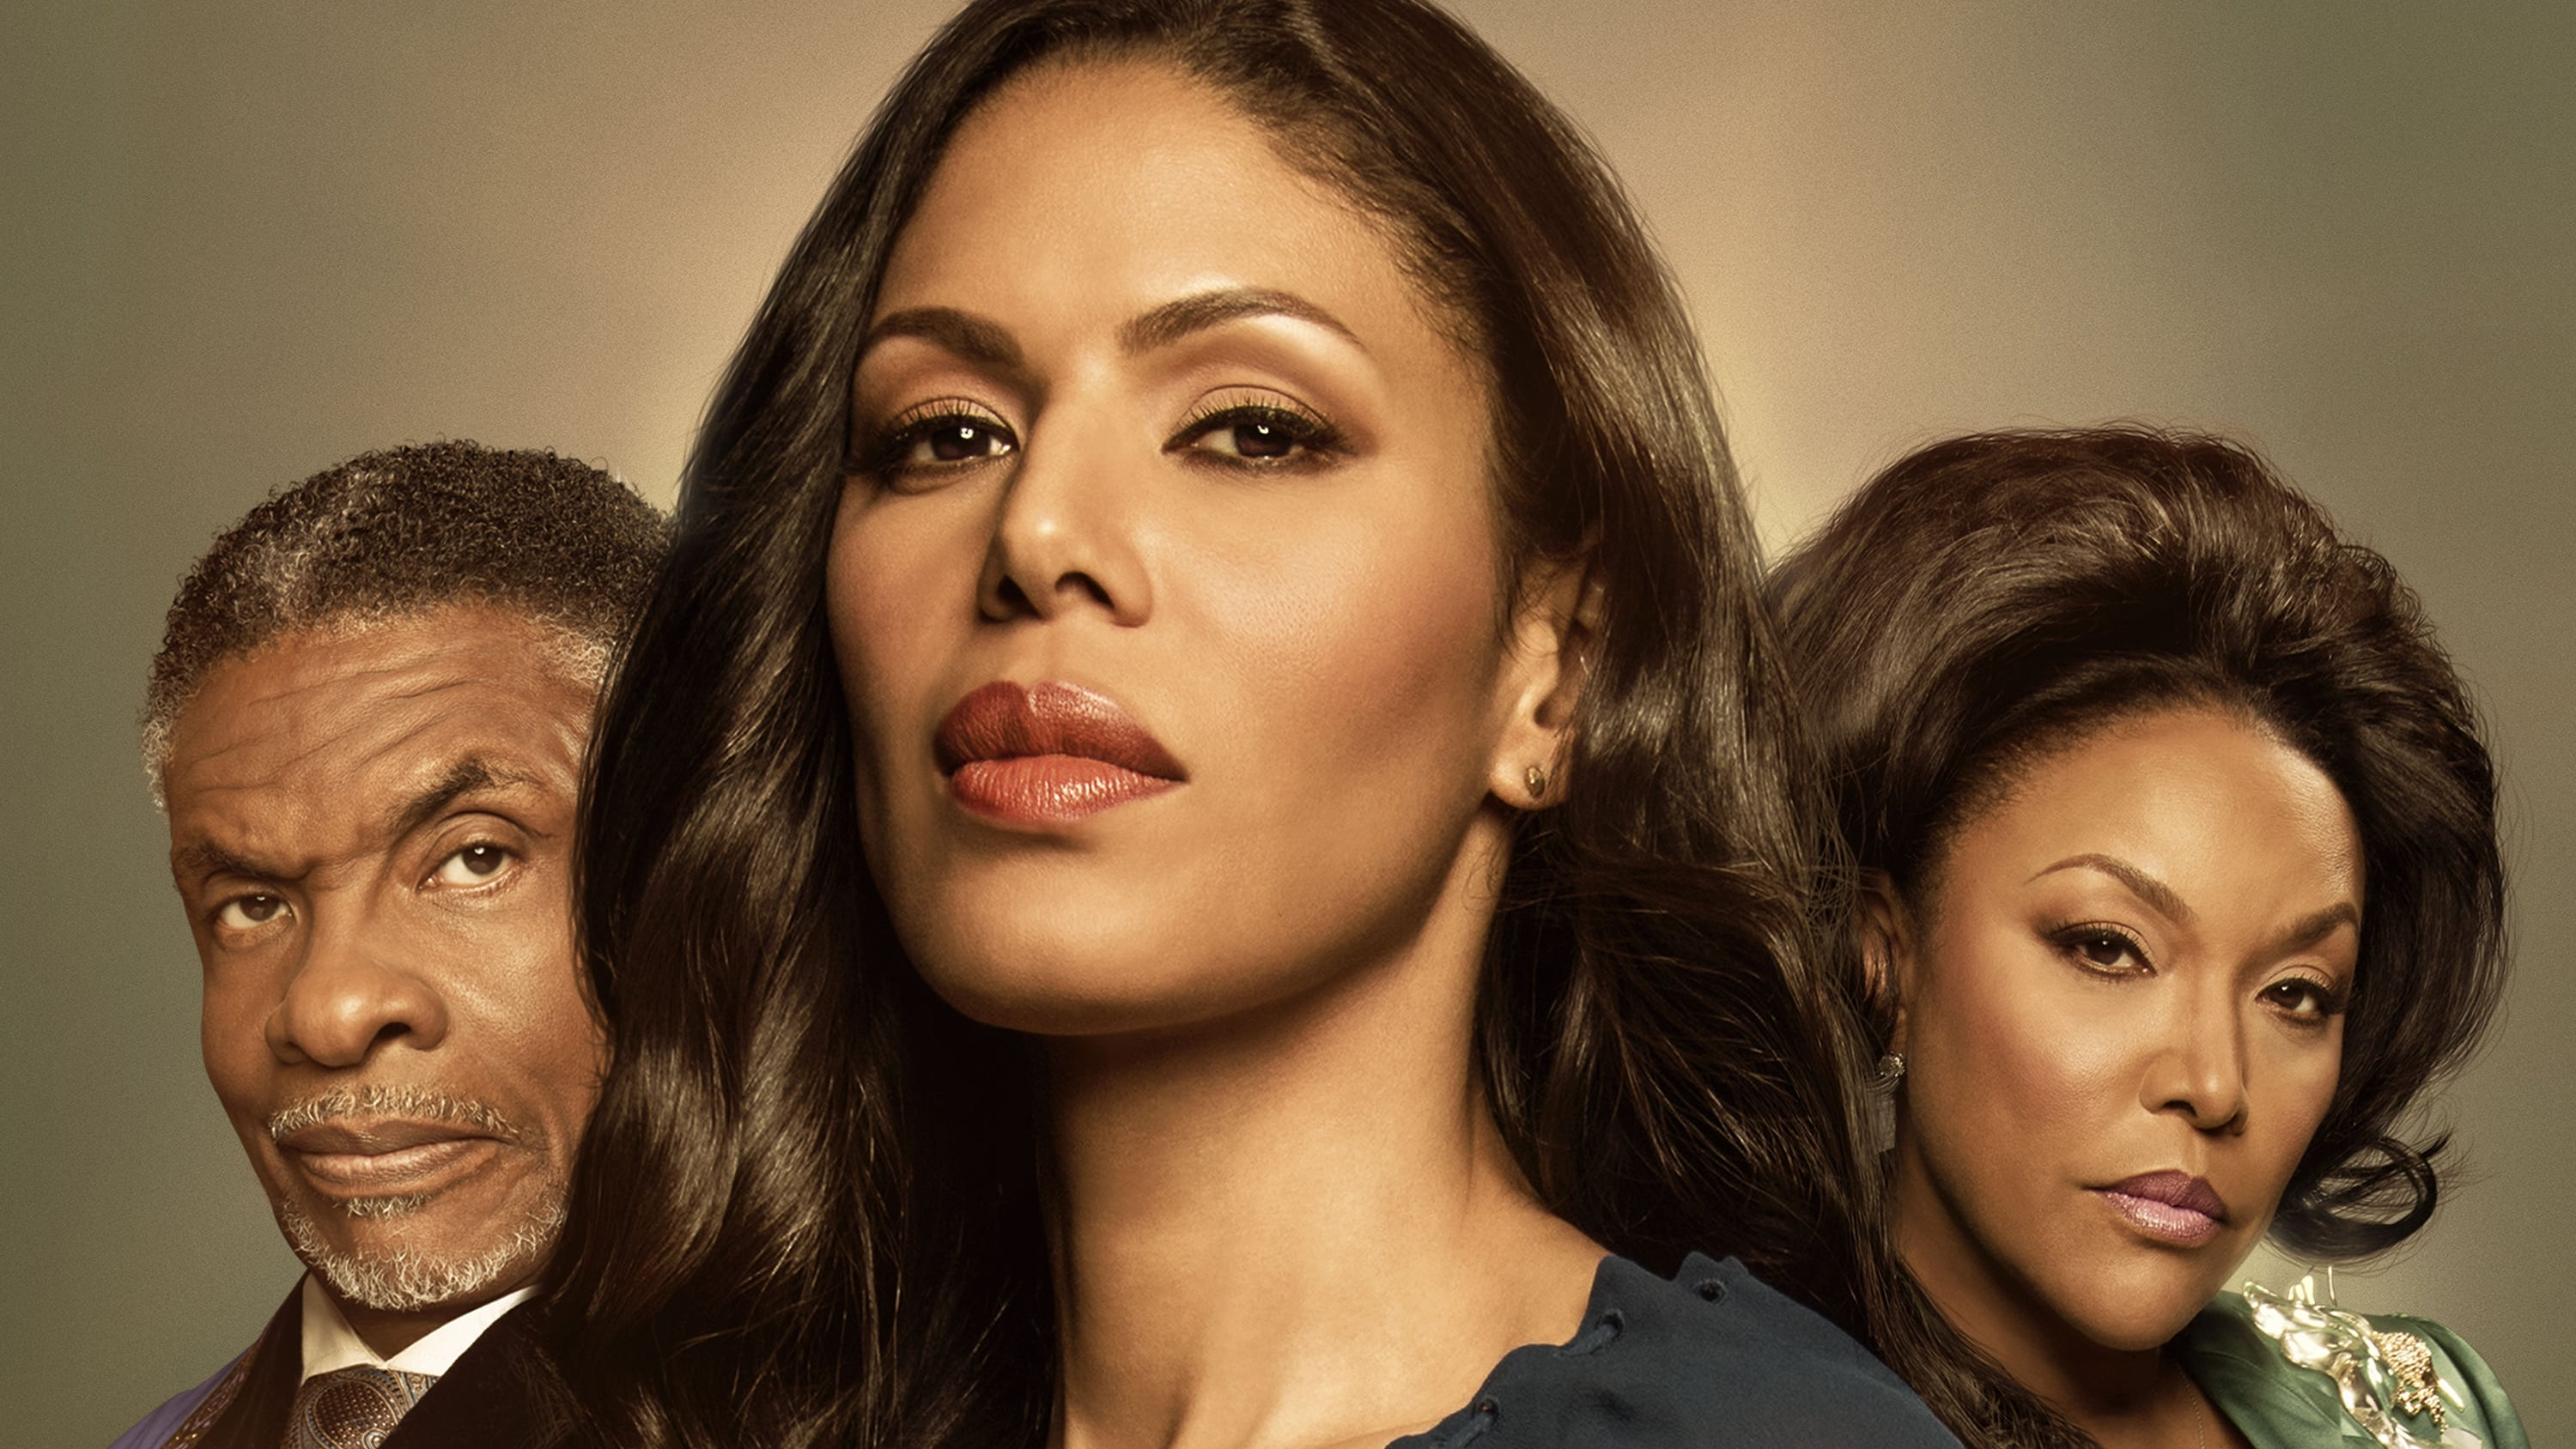 "greenleaf dating Year to date, ""greenleaf"" is the among the top five original scripted series on ad-supported cable in the women 25-54 demographic in niselen's live+3 ratings it is."